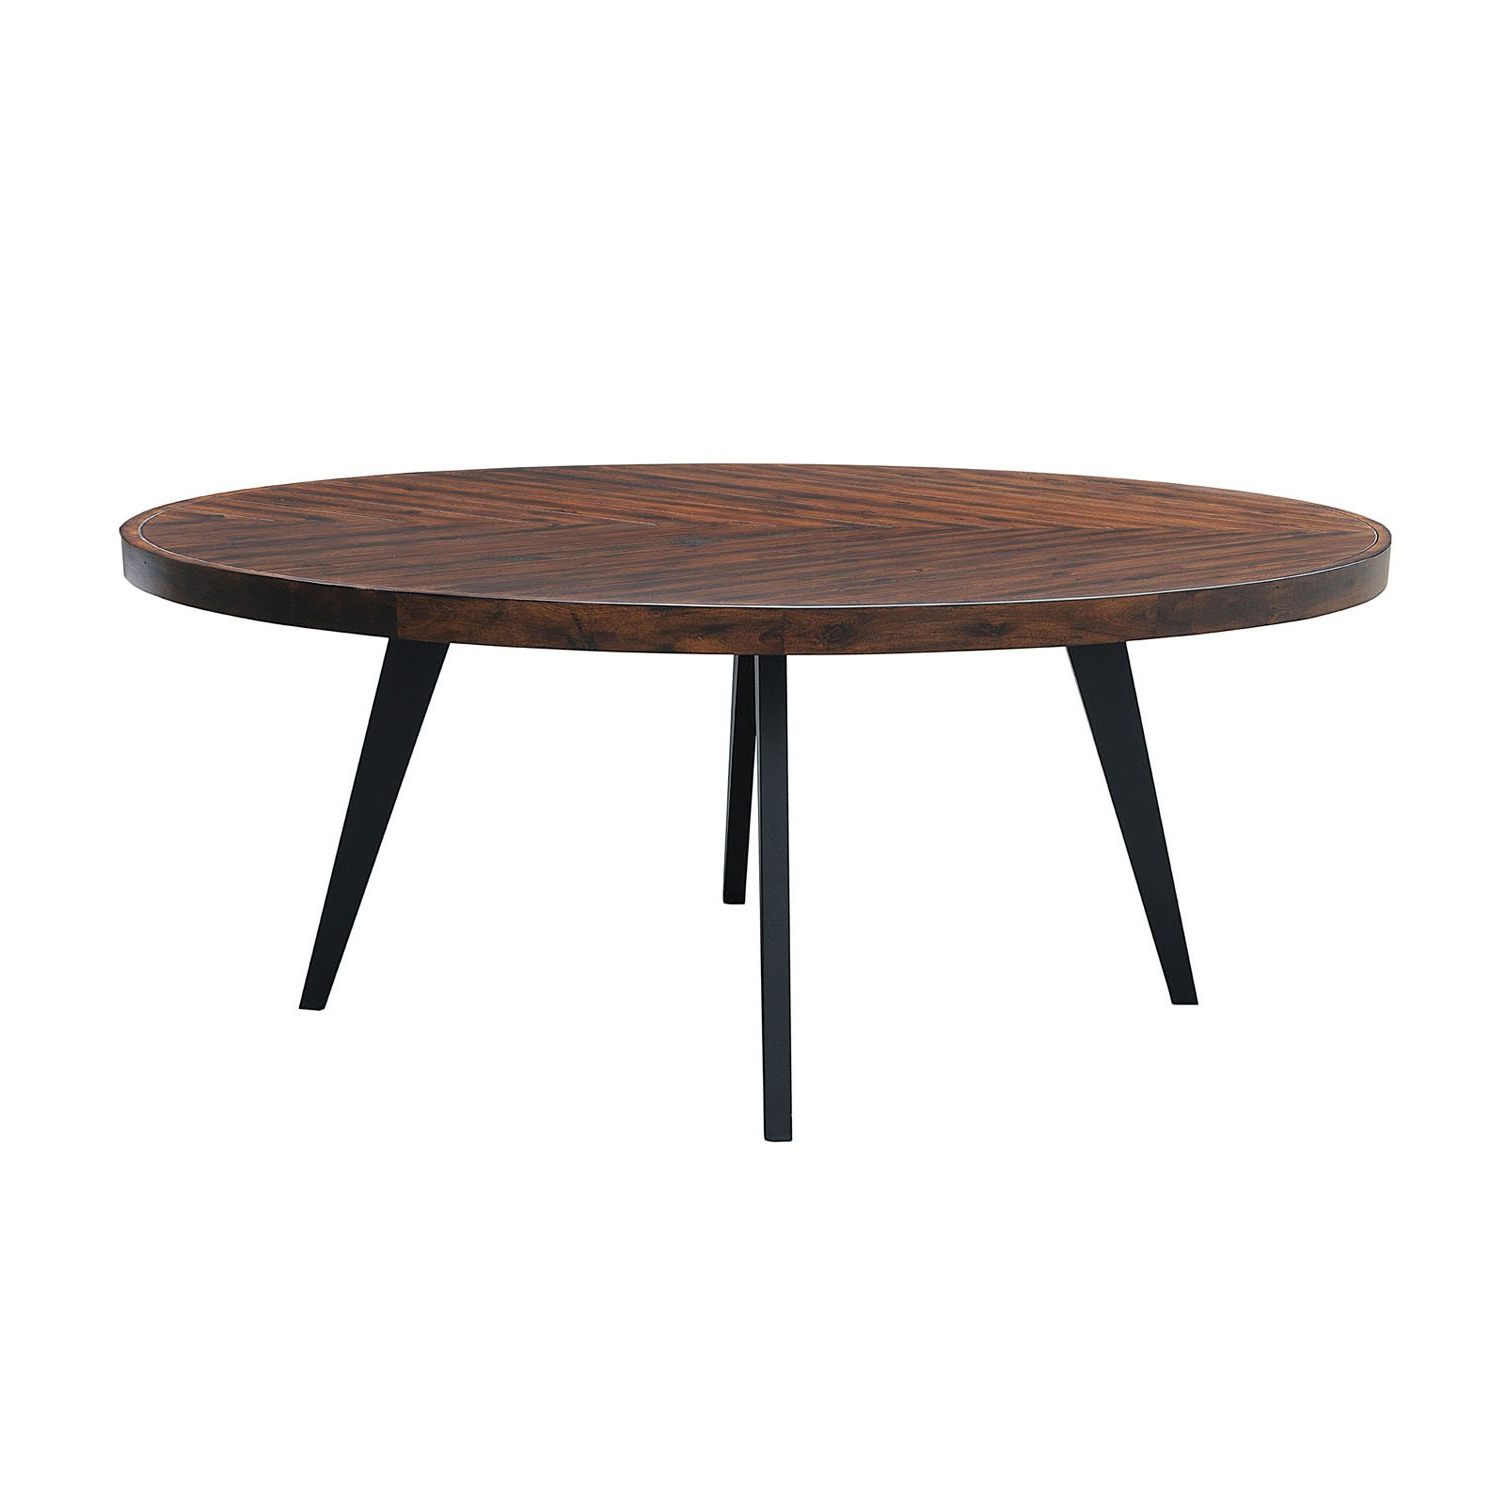 Favorite Avalon Oval Dining Table Acacia Top Tobacco Finish/metal For Acacia Top Dining Tables With Metal Legs (View 9 of 30)